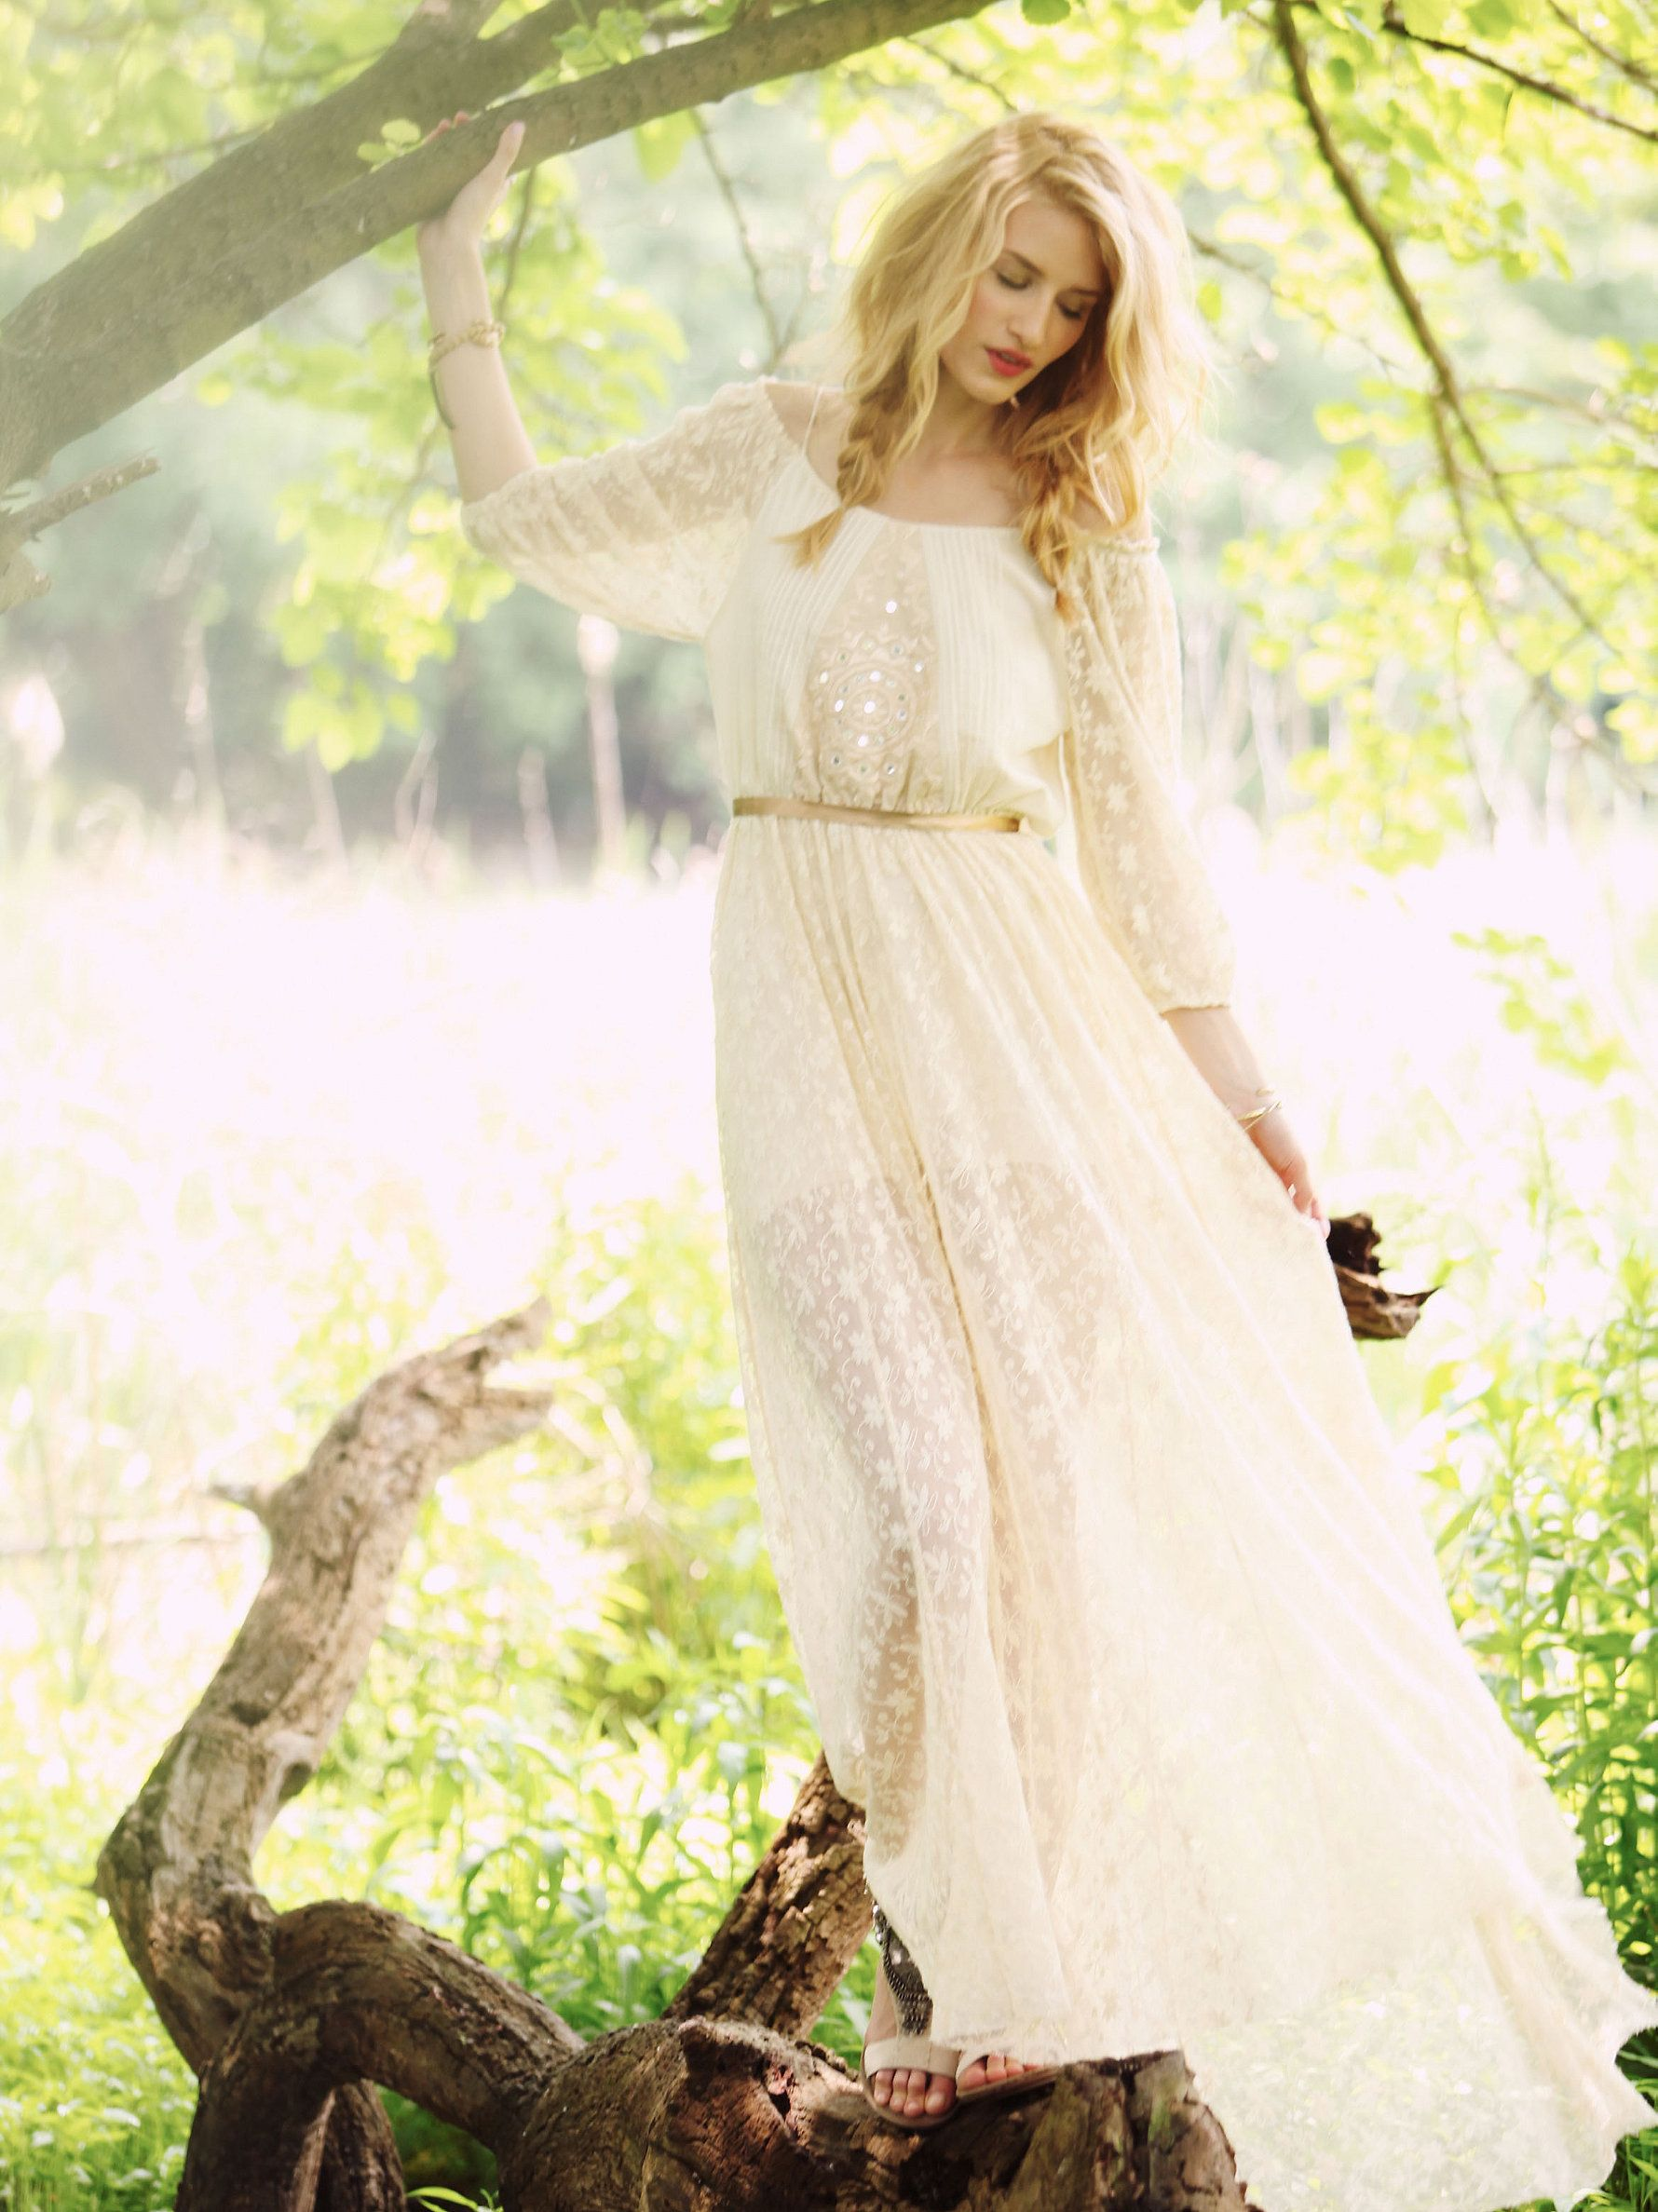 Another free people anaus limited edition white summer dress at free